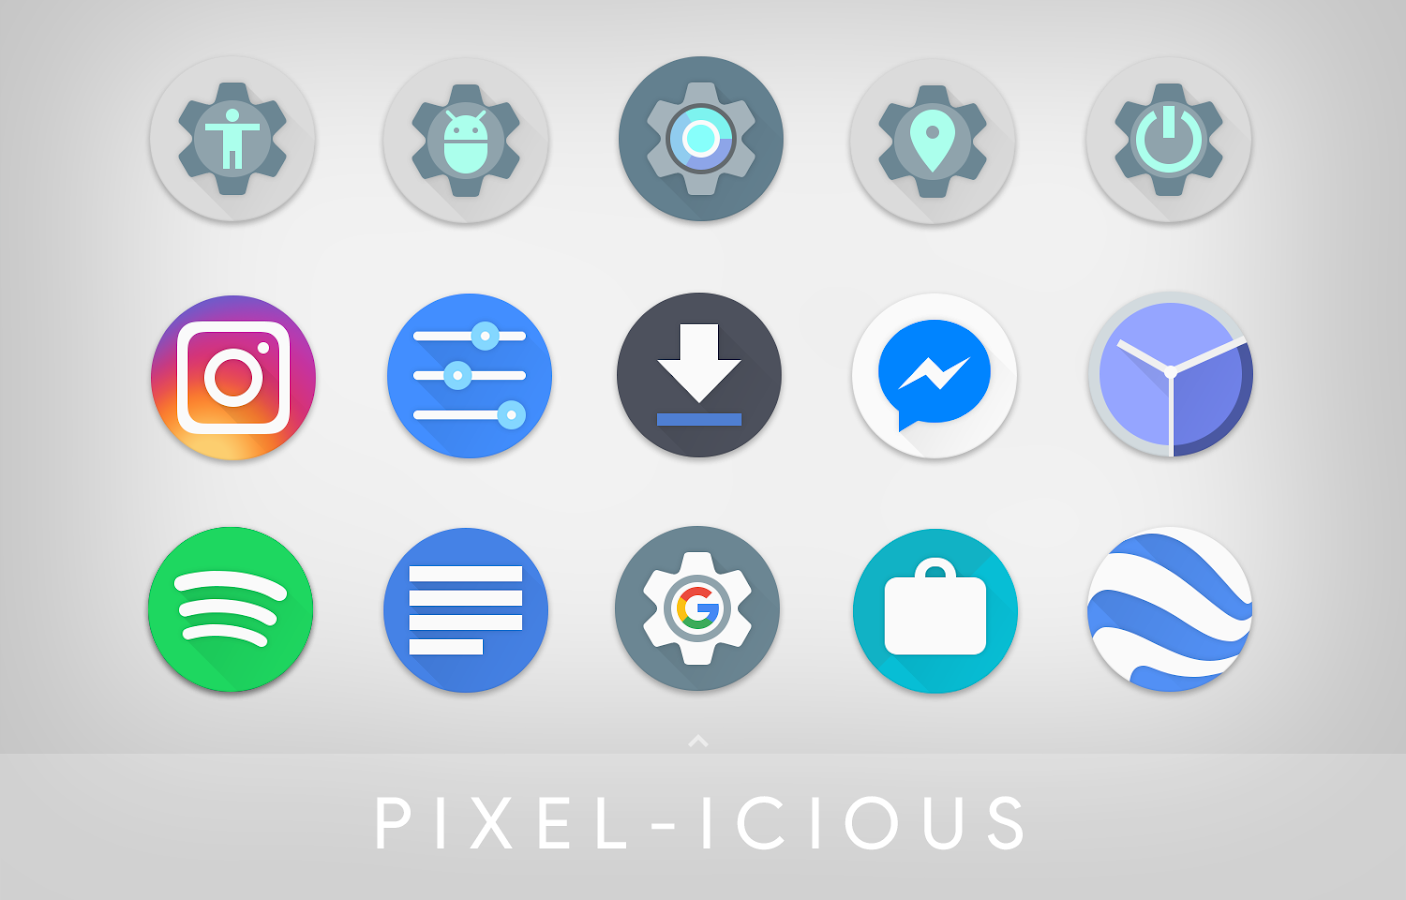 PIXELICIOUS ICON PACK Screenshot 5